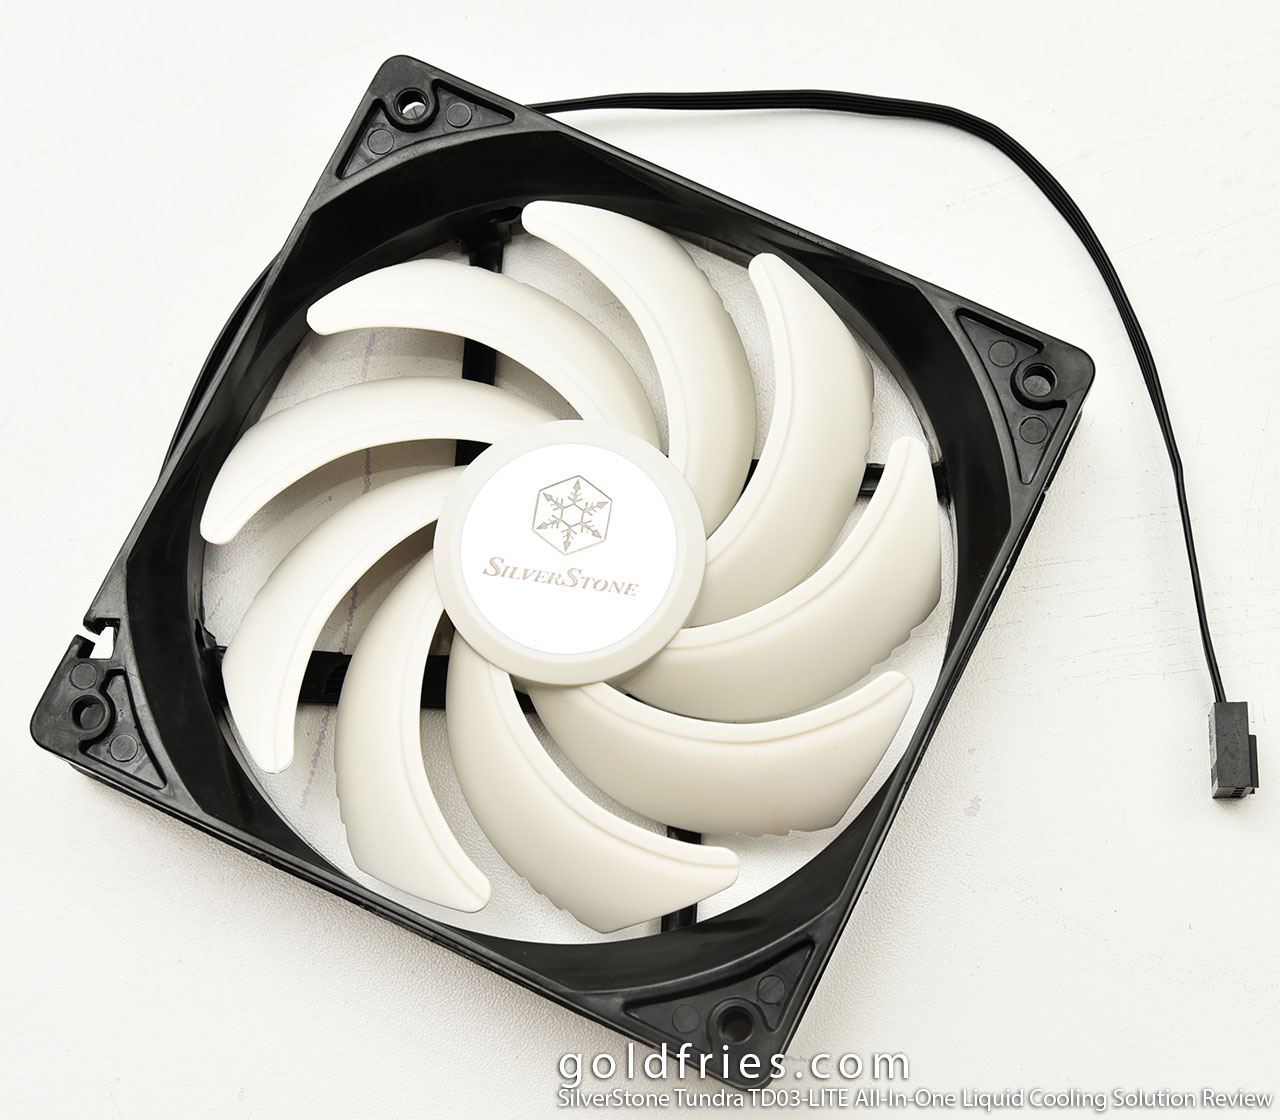 SilverStone Tundra TD03-LITE All-In-One Liquid Cooling Solution Review